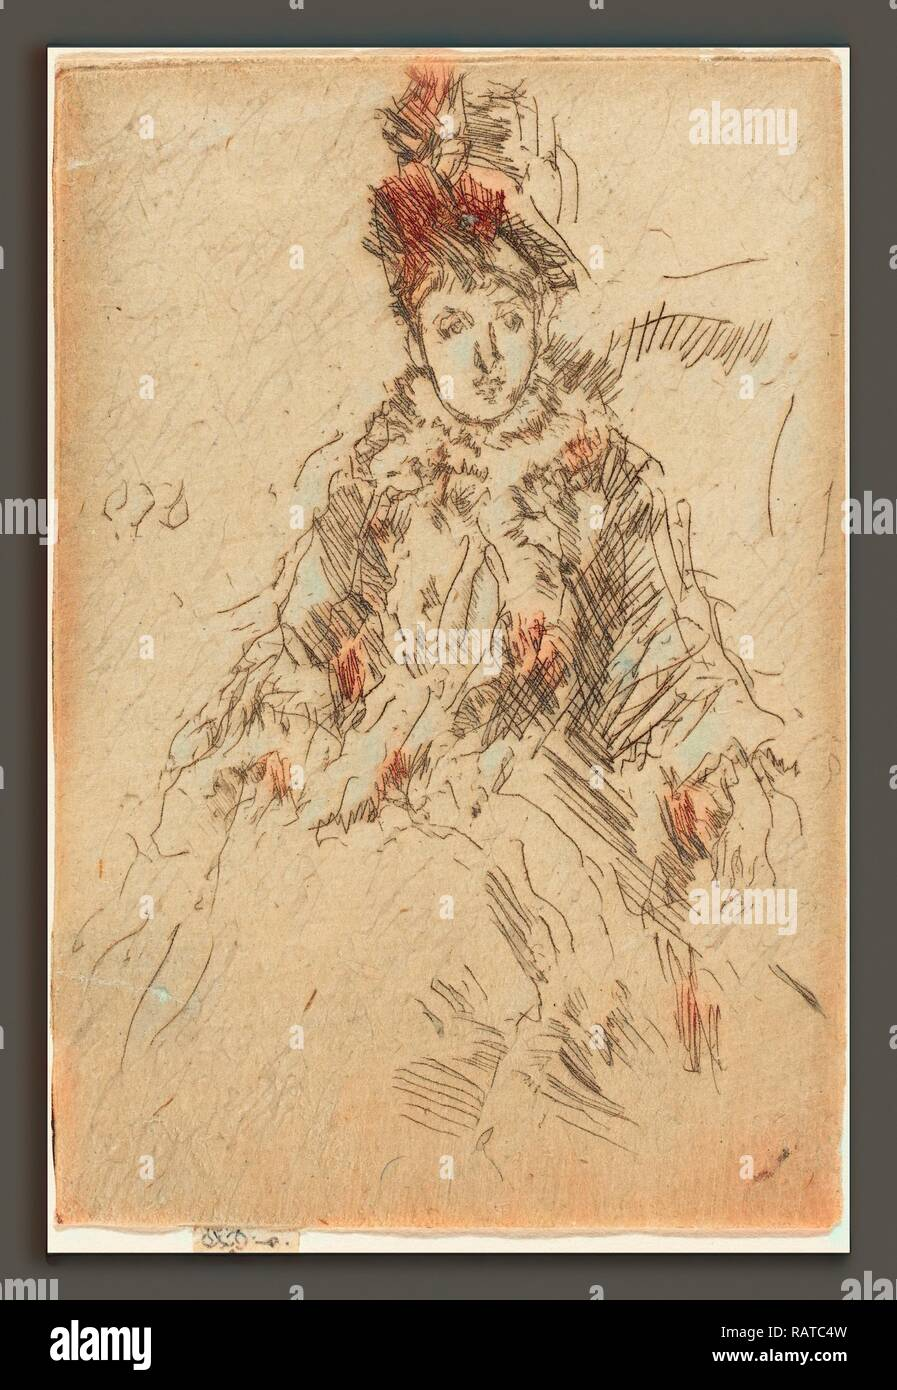 James McNeill Whistler (American, 1834 - 1903), Miss Lenoir, c. 1887, etching and drypoint. Reimagined - Stock Image